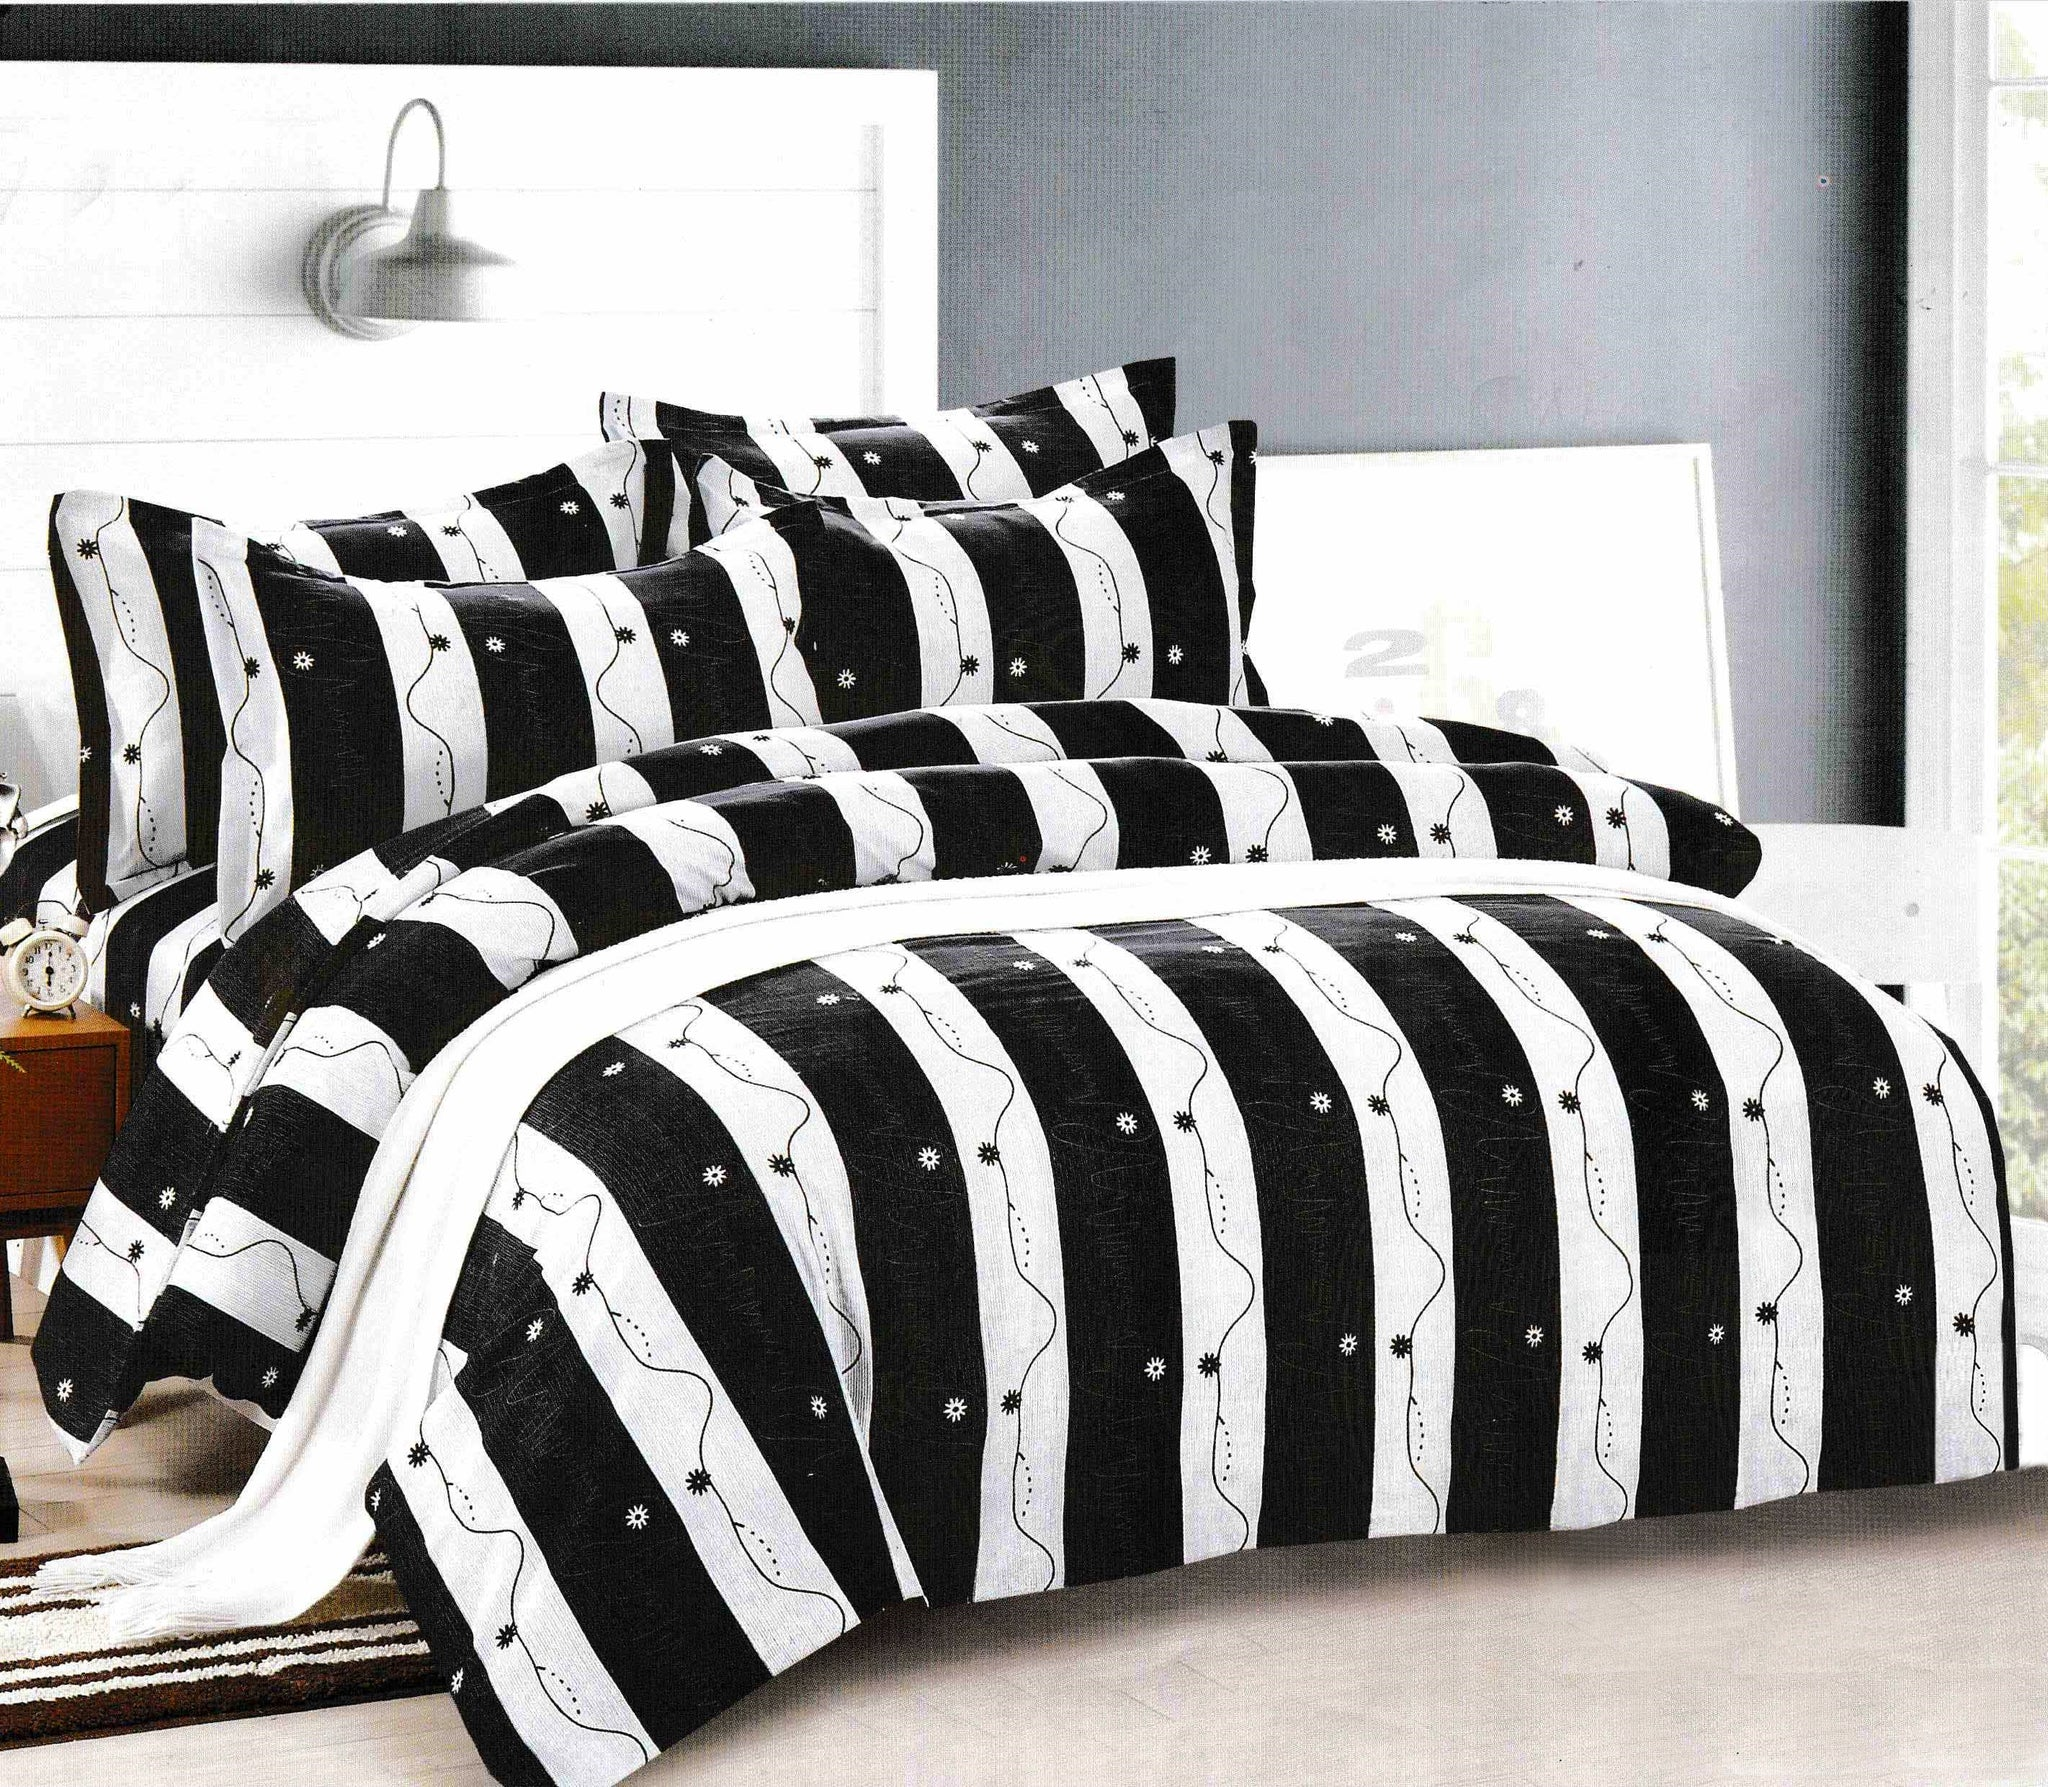 Bullahshah Grey, Black & White Panels Design Duvet Cover Bedding Set with Pillowcases